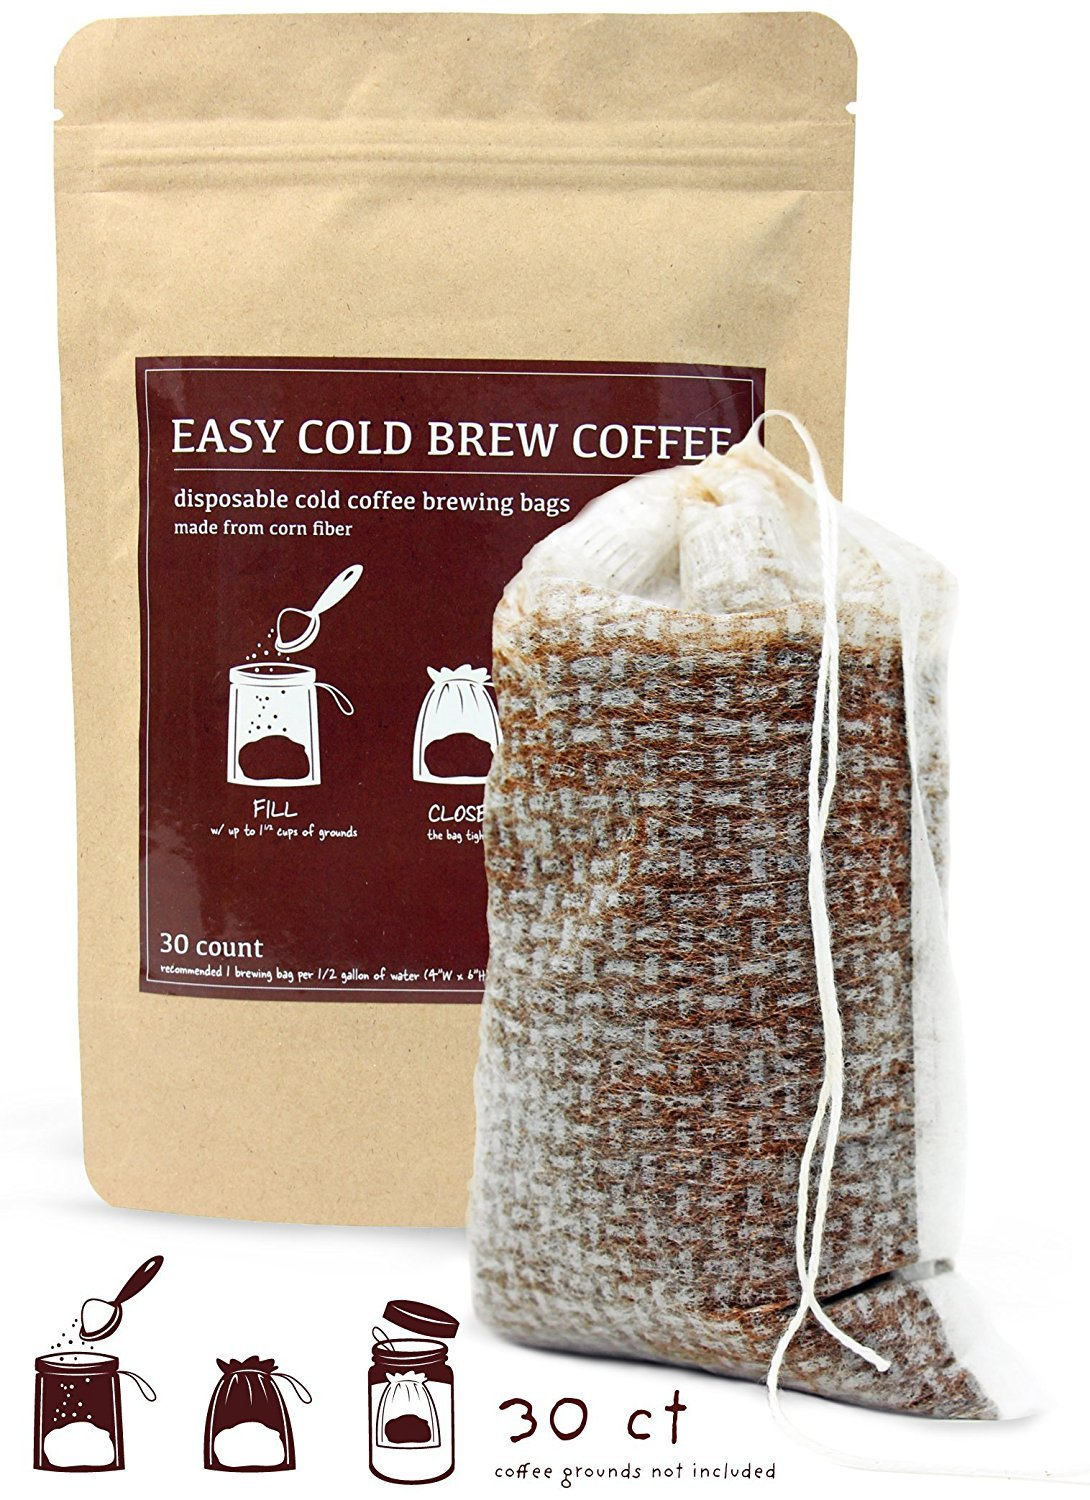 No Mess Cold Brew Coffee Filters - Easy, Single Use Filter Sock Packs, Disposable, Fine Mesh Brewing Bags for Concentrate, Iced Coffee Maker, French/Cold Press Kit, Hot Tea in Mason Jar or Pitcher by EasyColdBrewCoffee.com